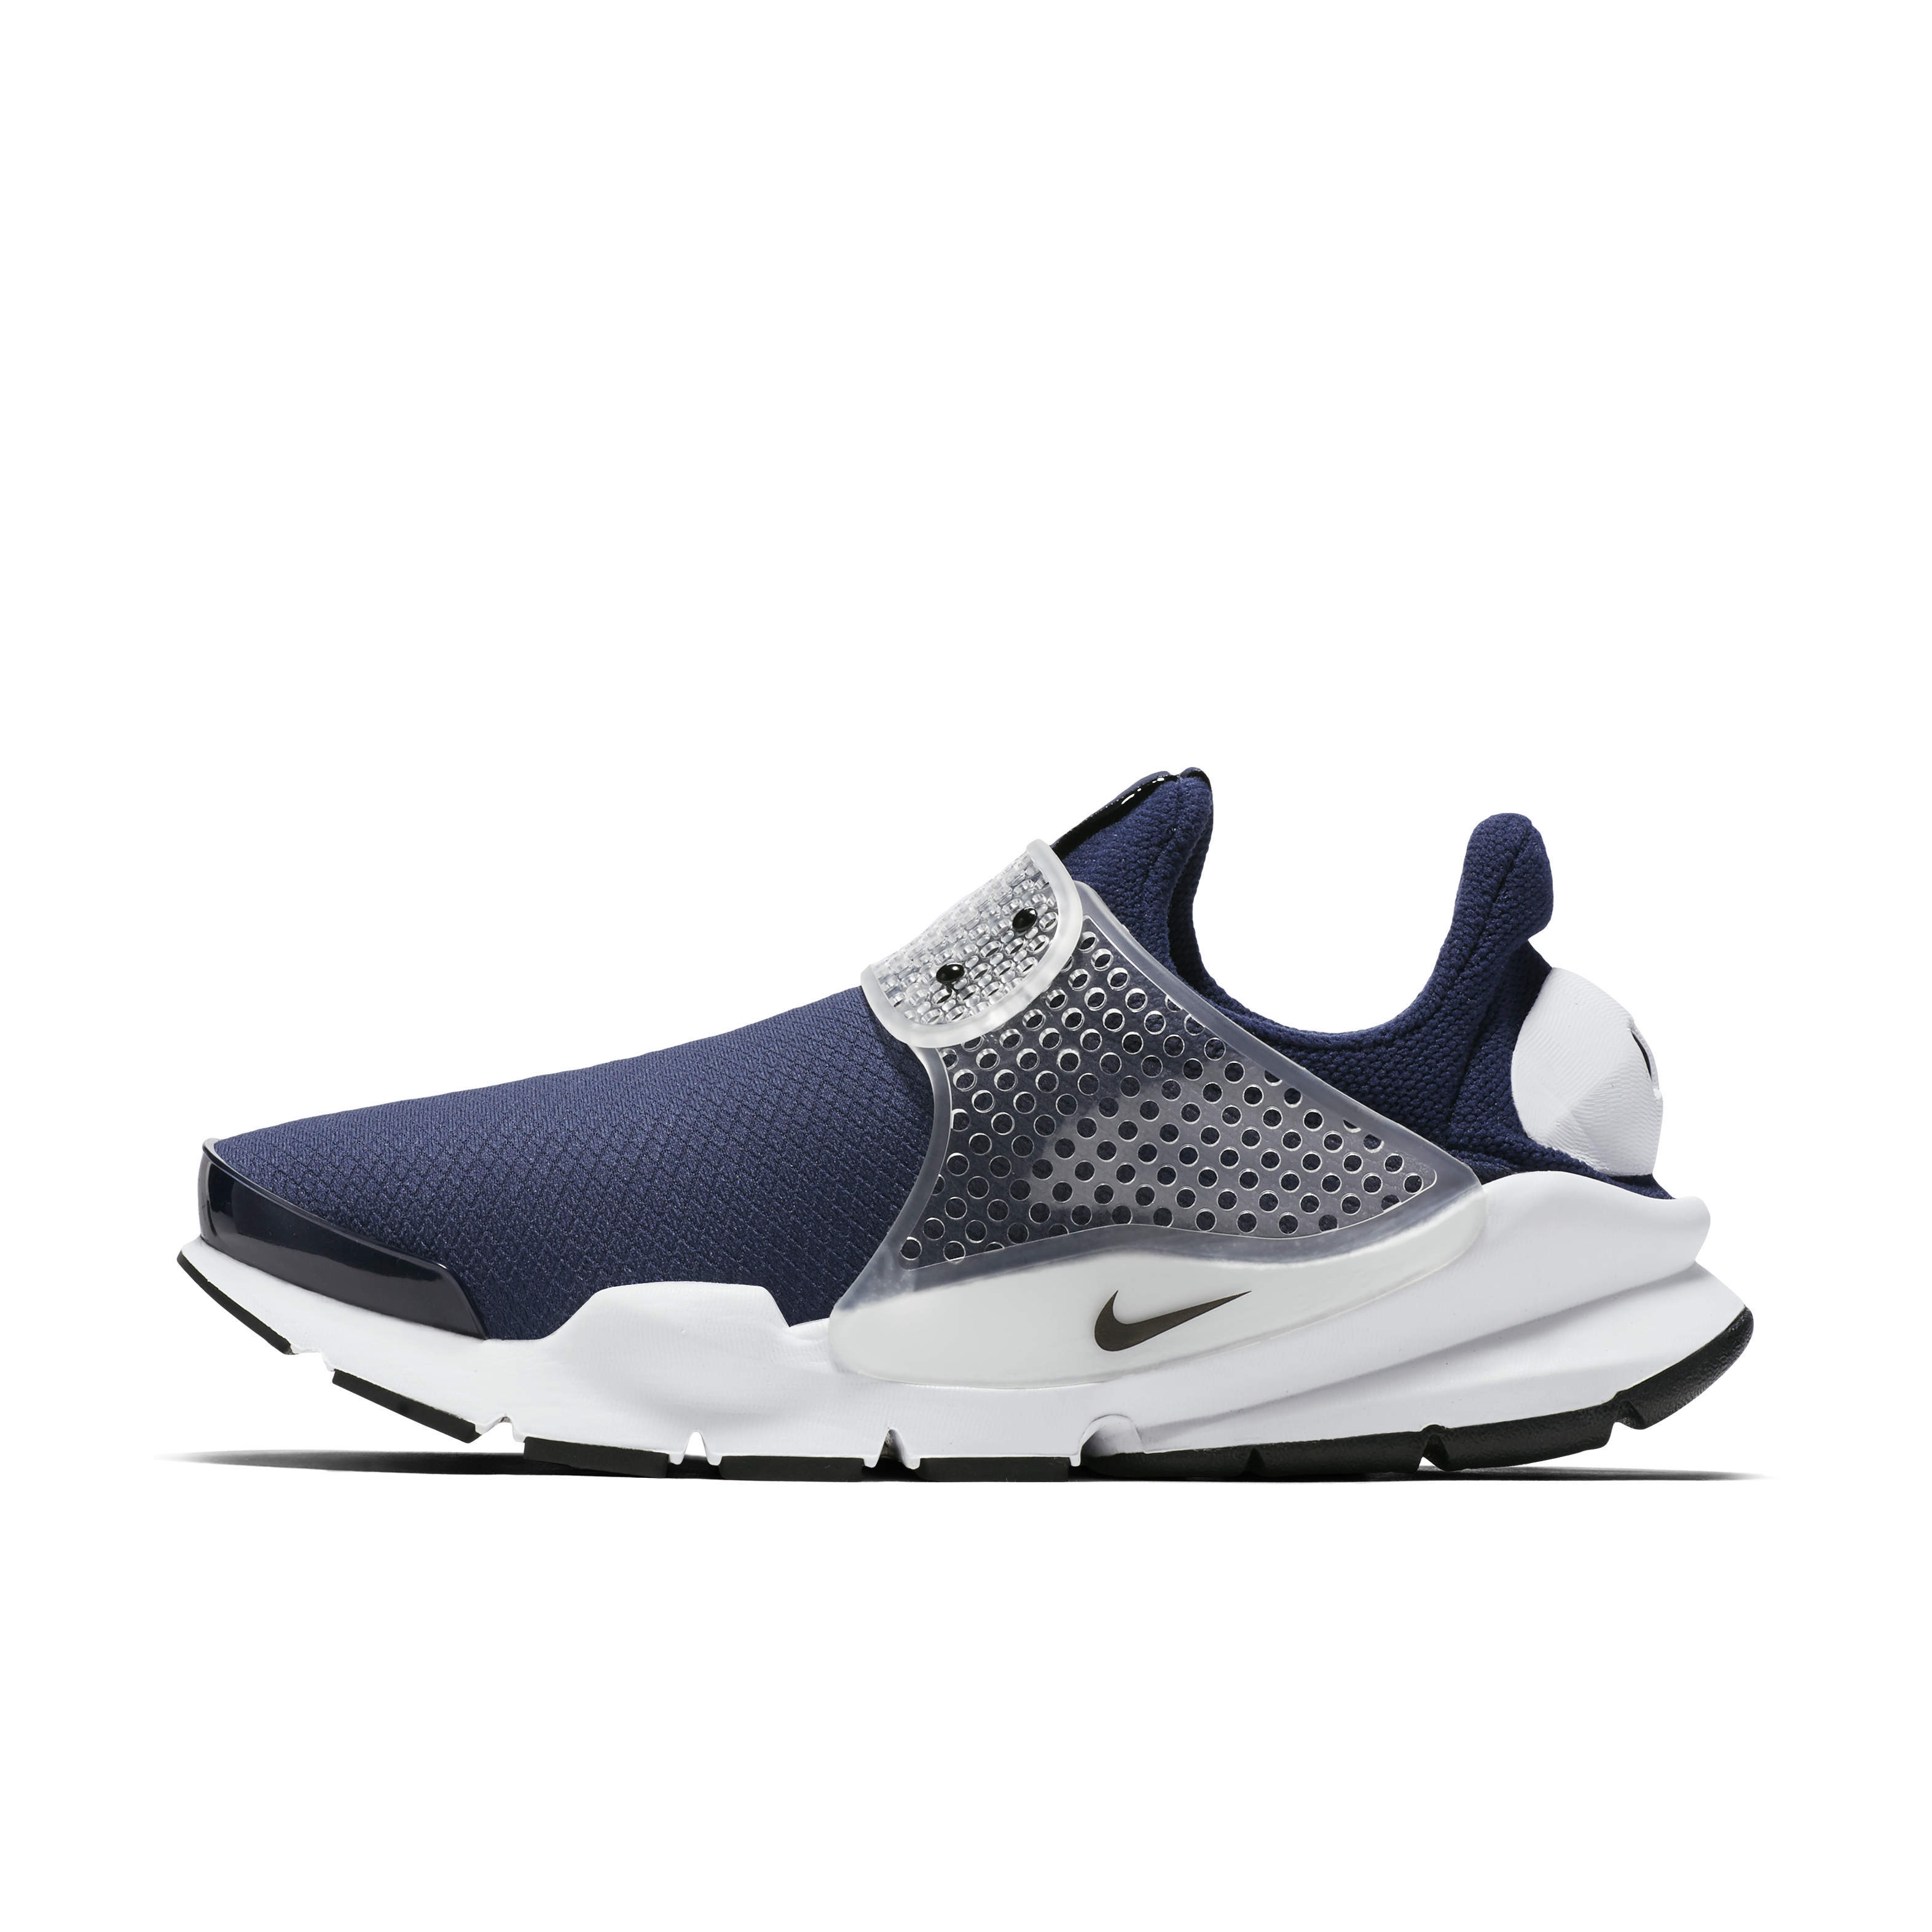 new product 82716 6ea37 ... lightbox moreview · lightbox moreview. PrevNext. H warehouse Nike Sock  DART Fujiwara Hao women s sports socks shoes casual shoes 848475-401